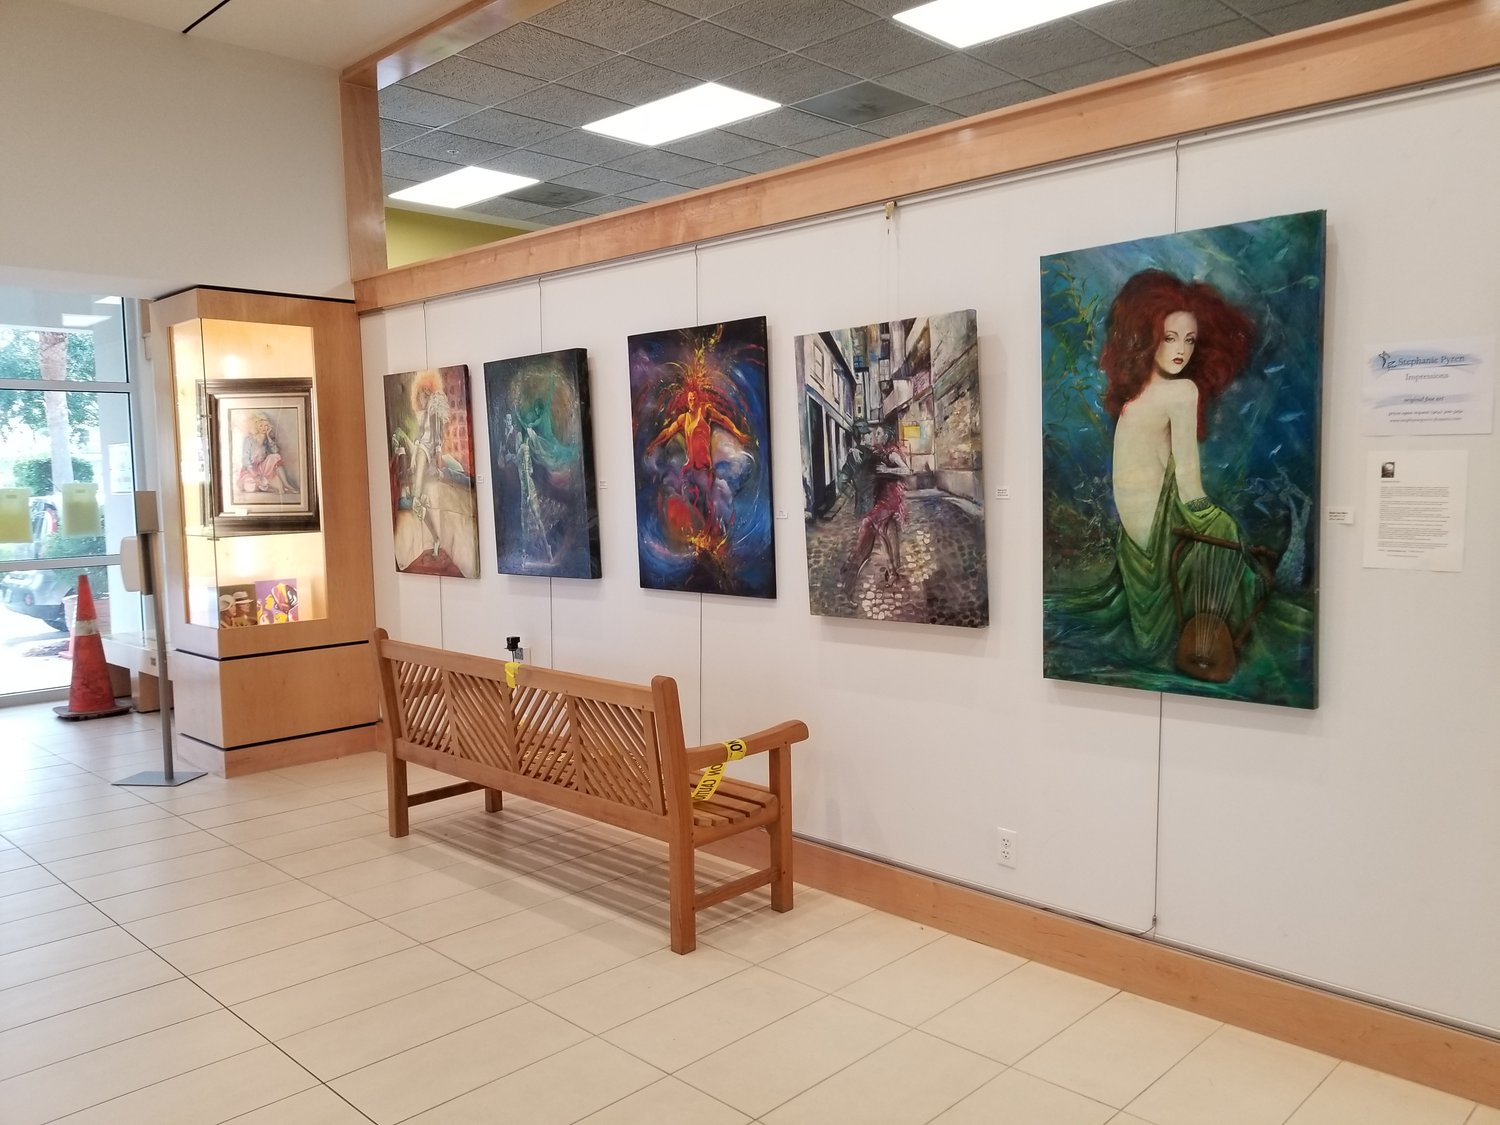 The entrance to the Ponte Vedra Public Library boasts vibrant artwork by artists Stephanie Pyren.